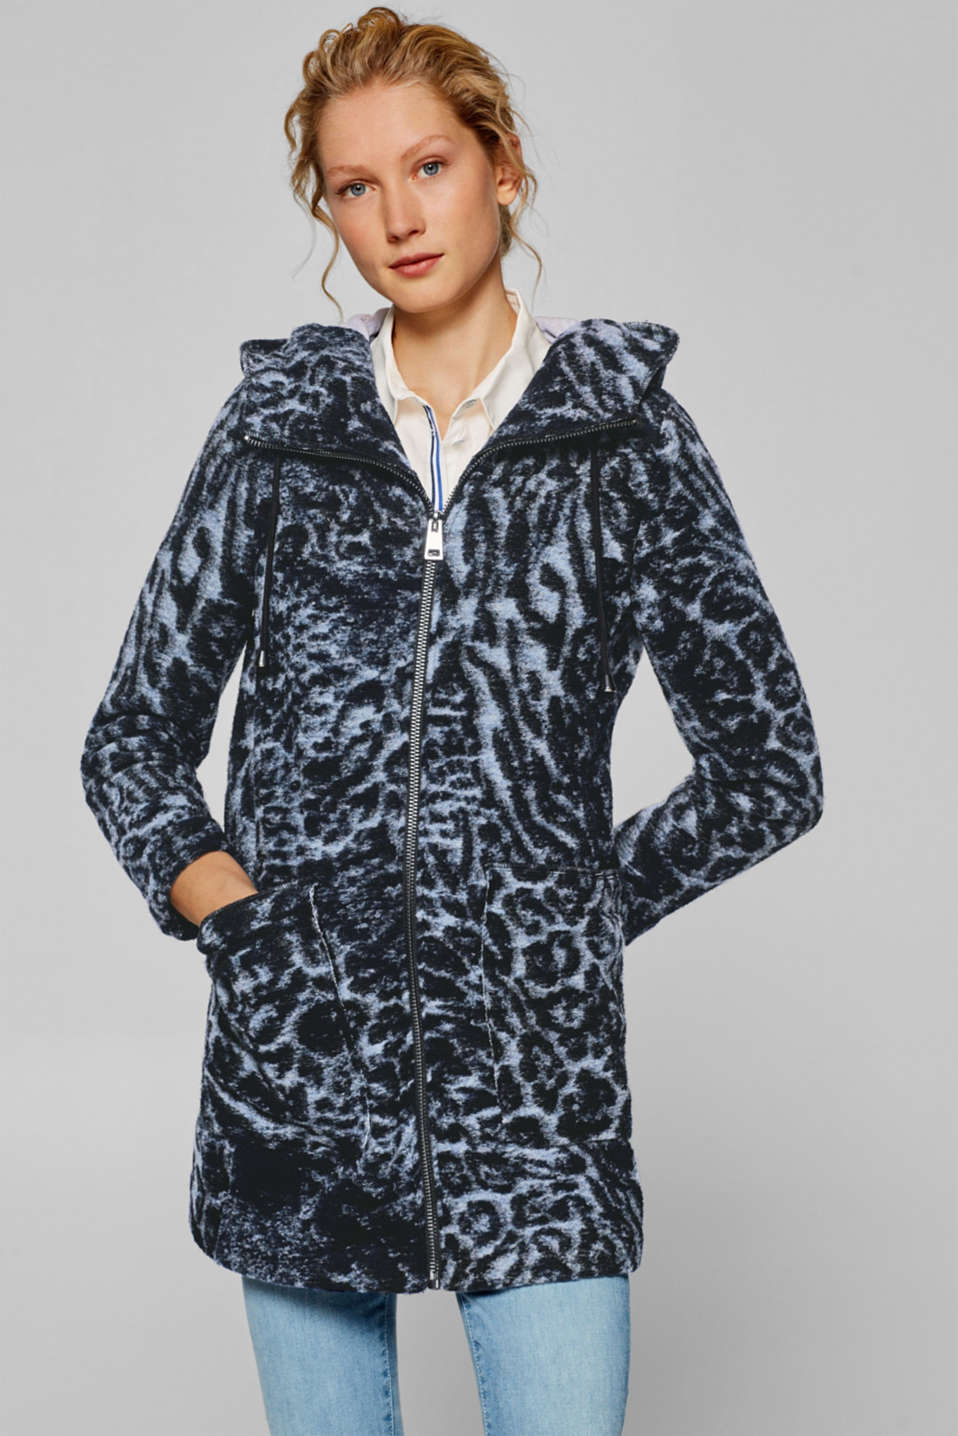 Esprit - Made of blended wool: hooded jacket with leopard print